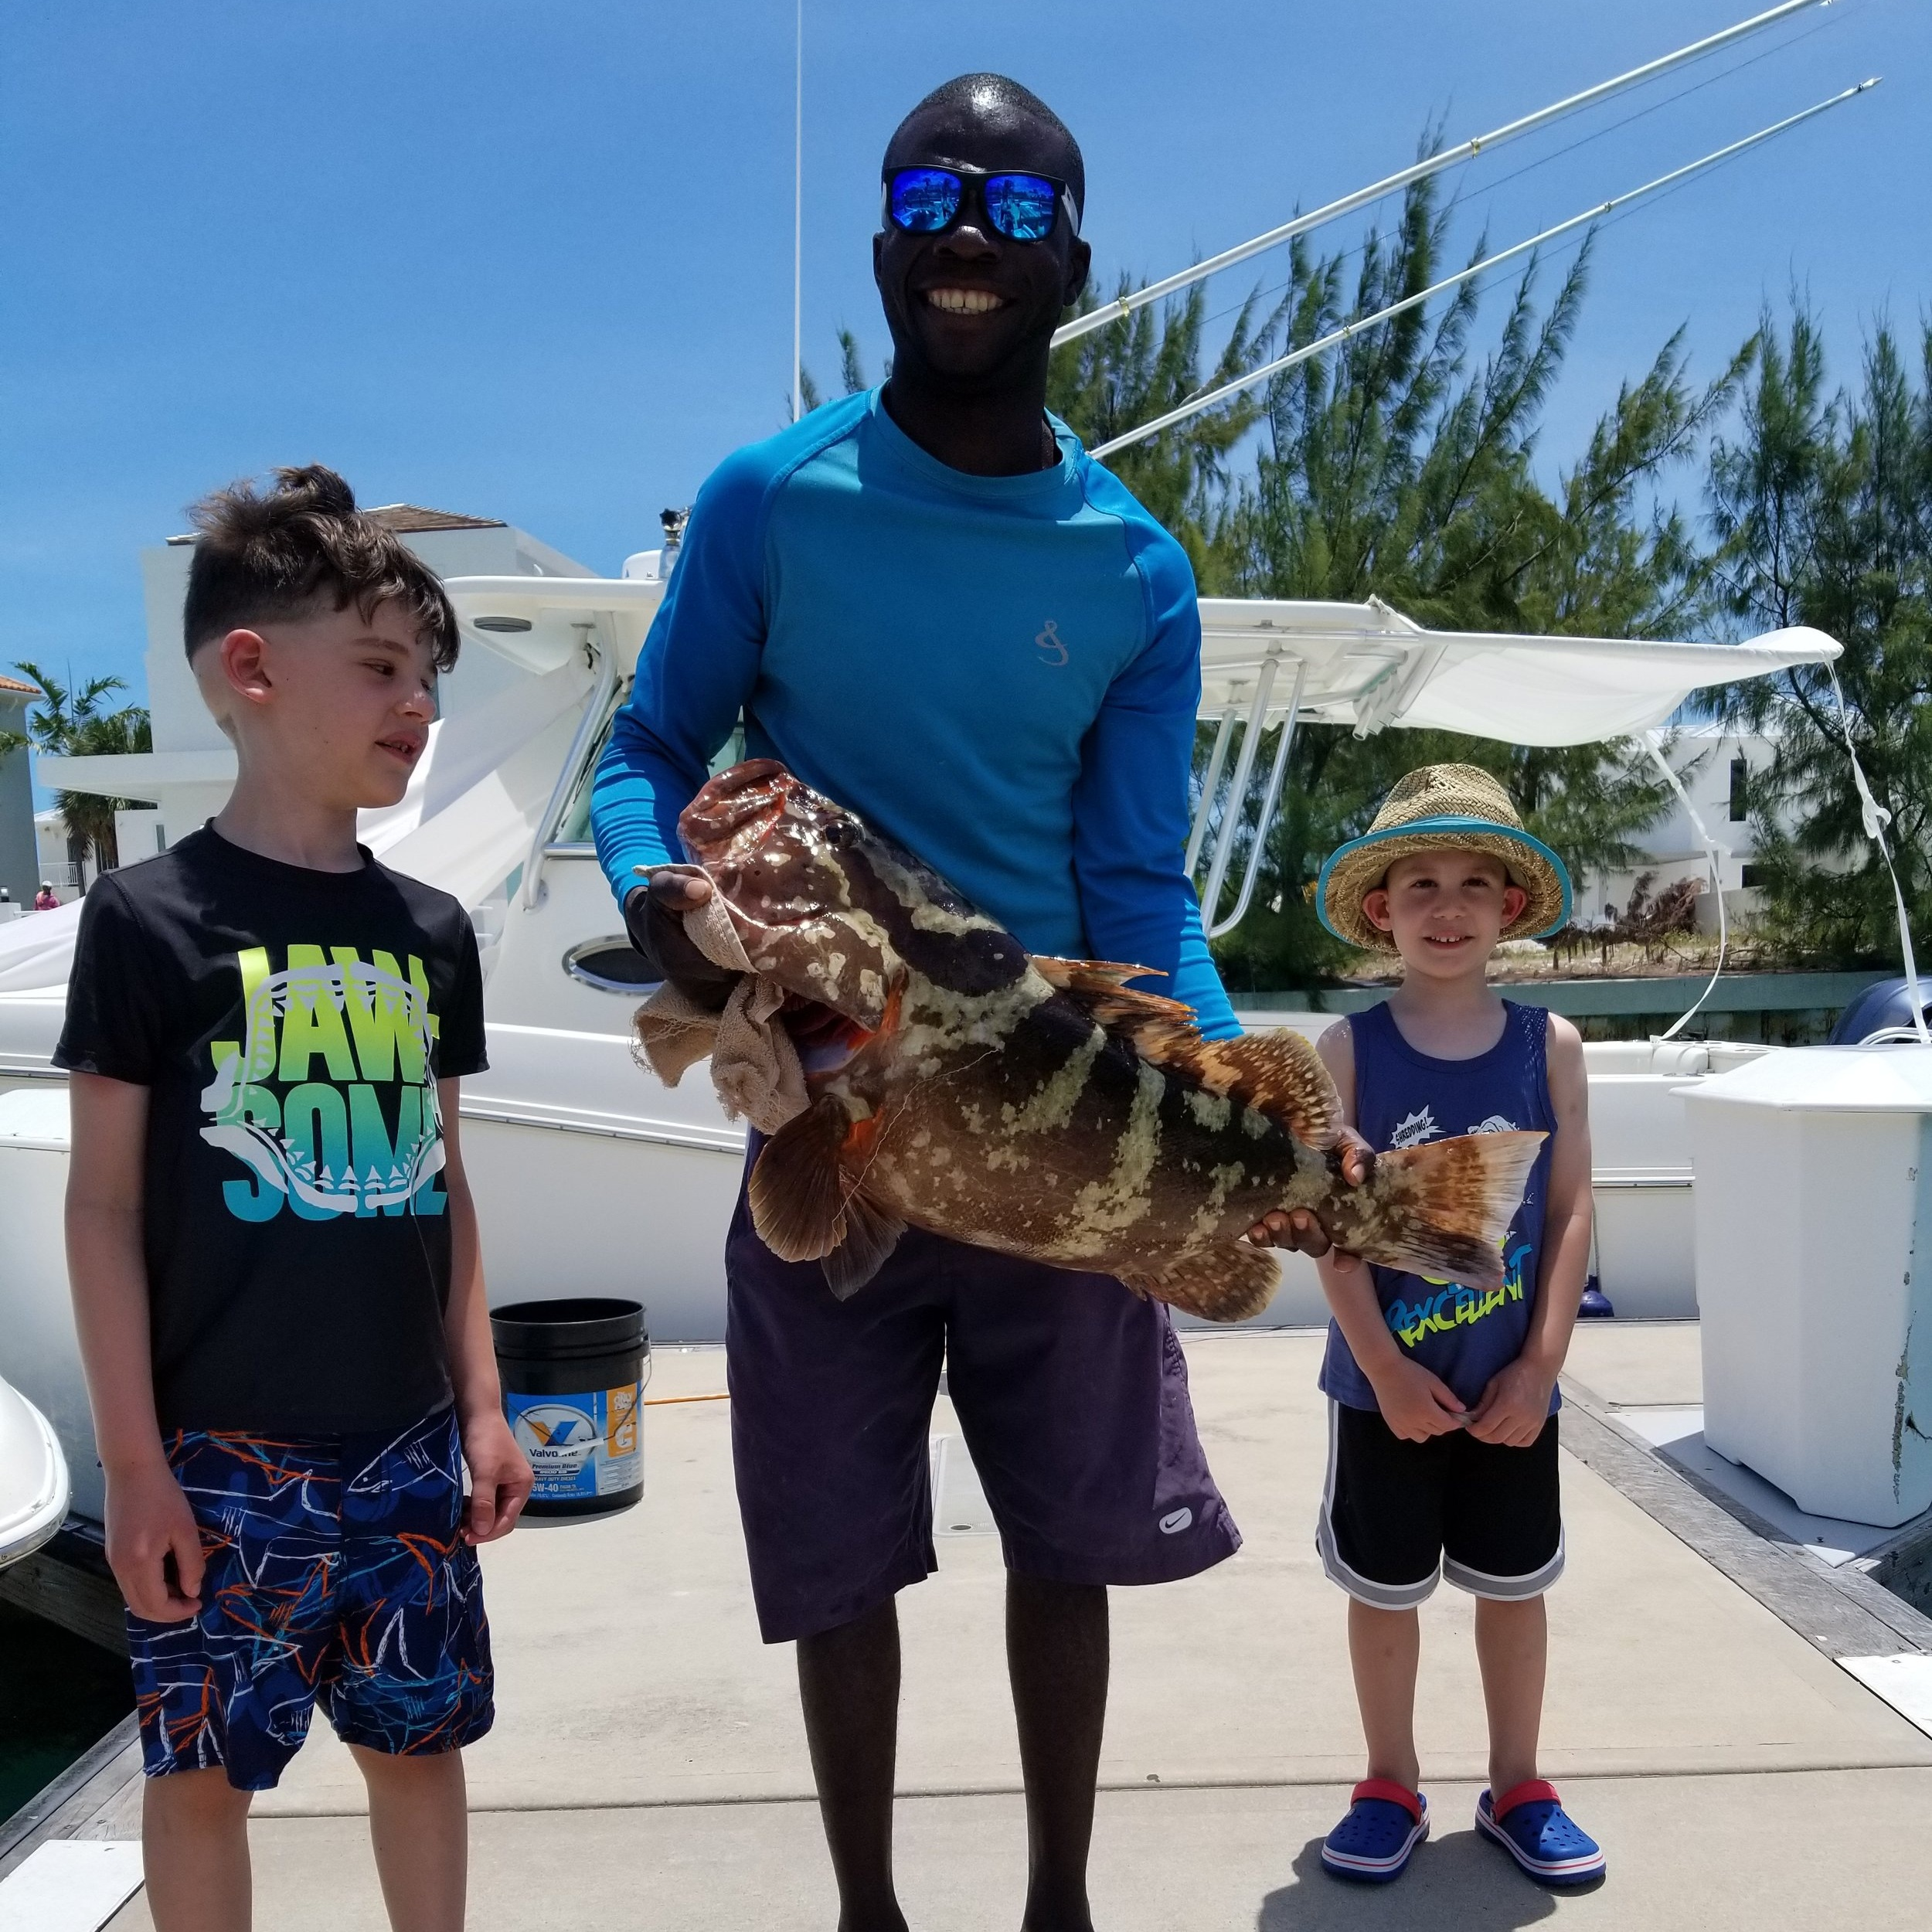 Pictured: Nathan  and his brother enjoying a dream fishing excursion in Turks and Caicos!